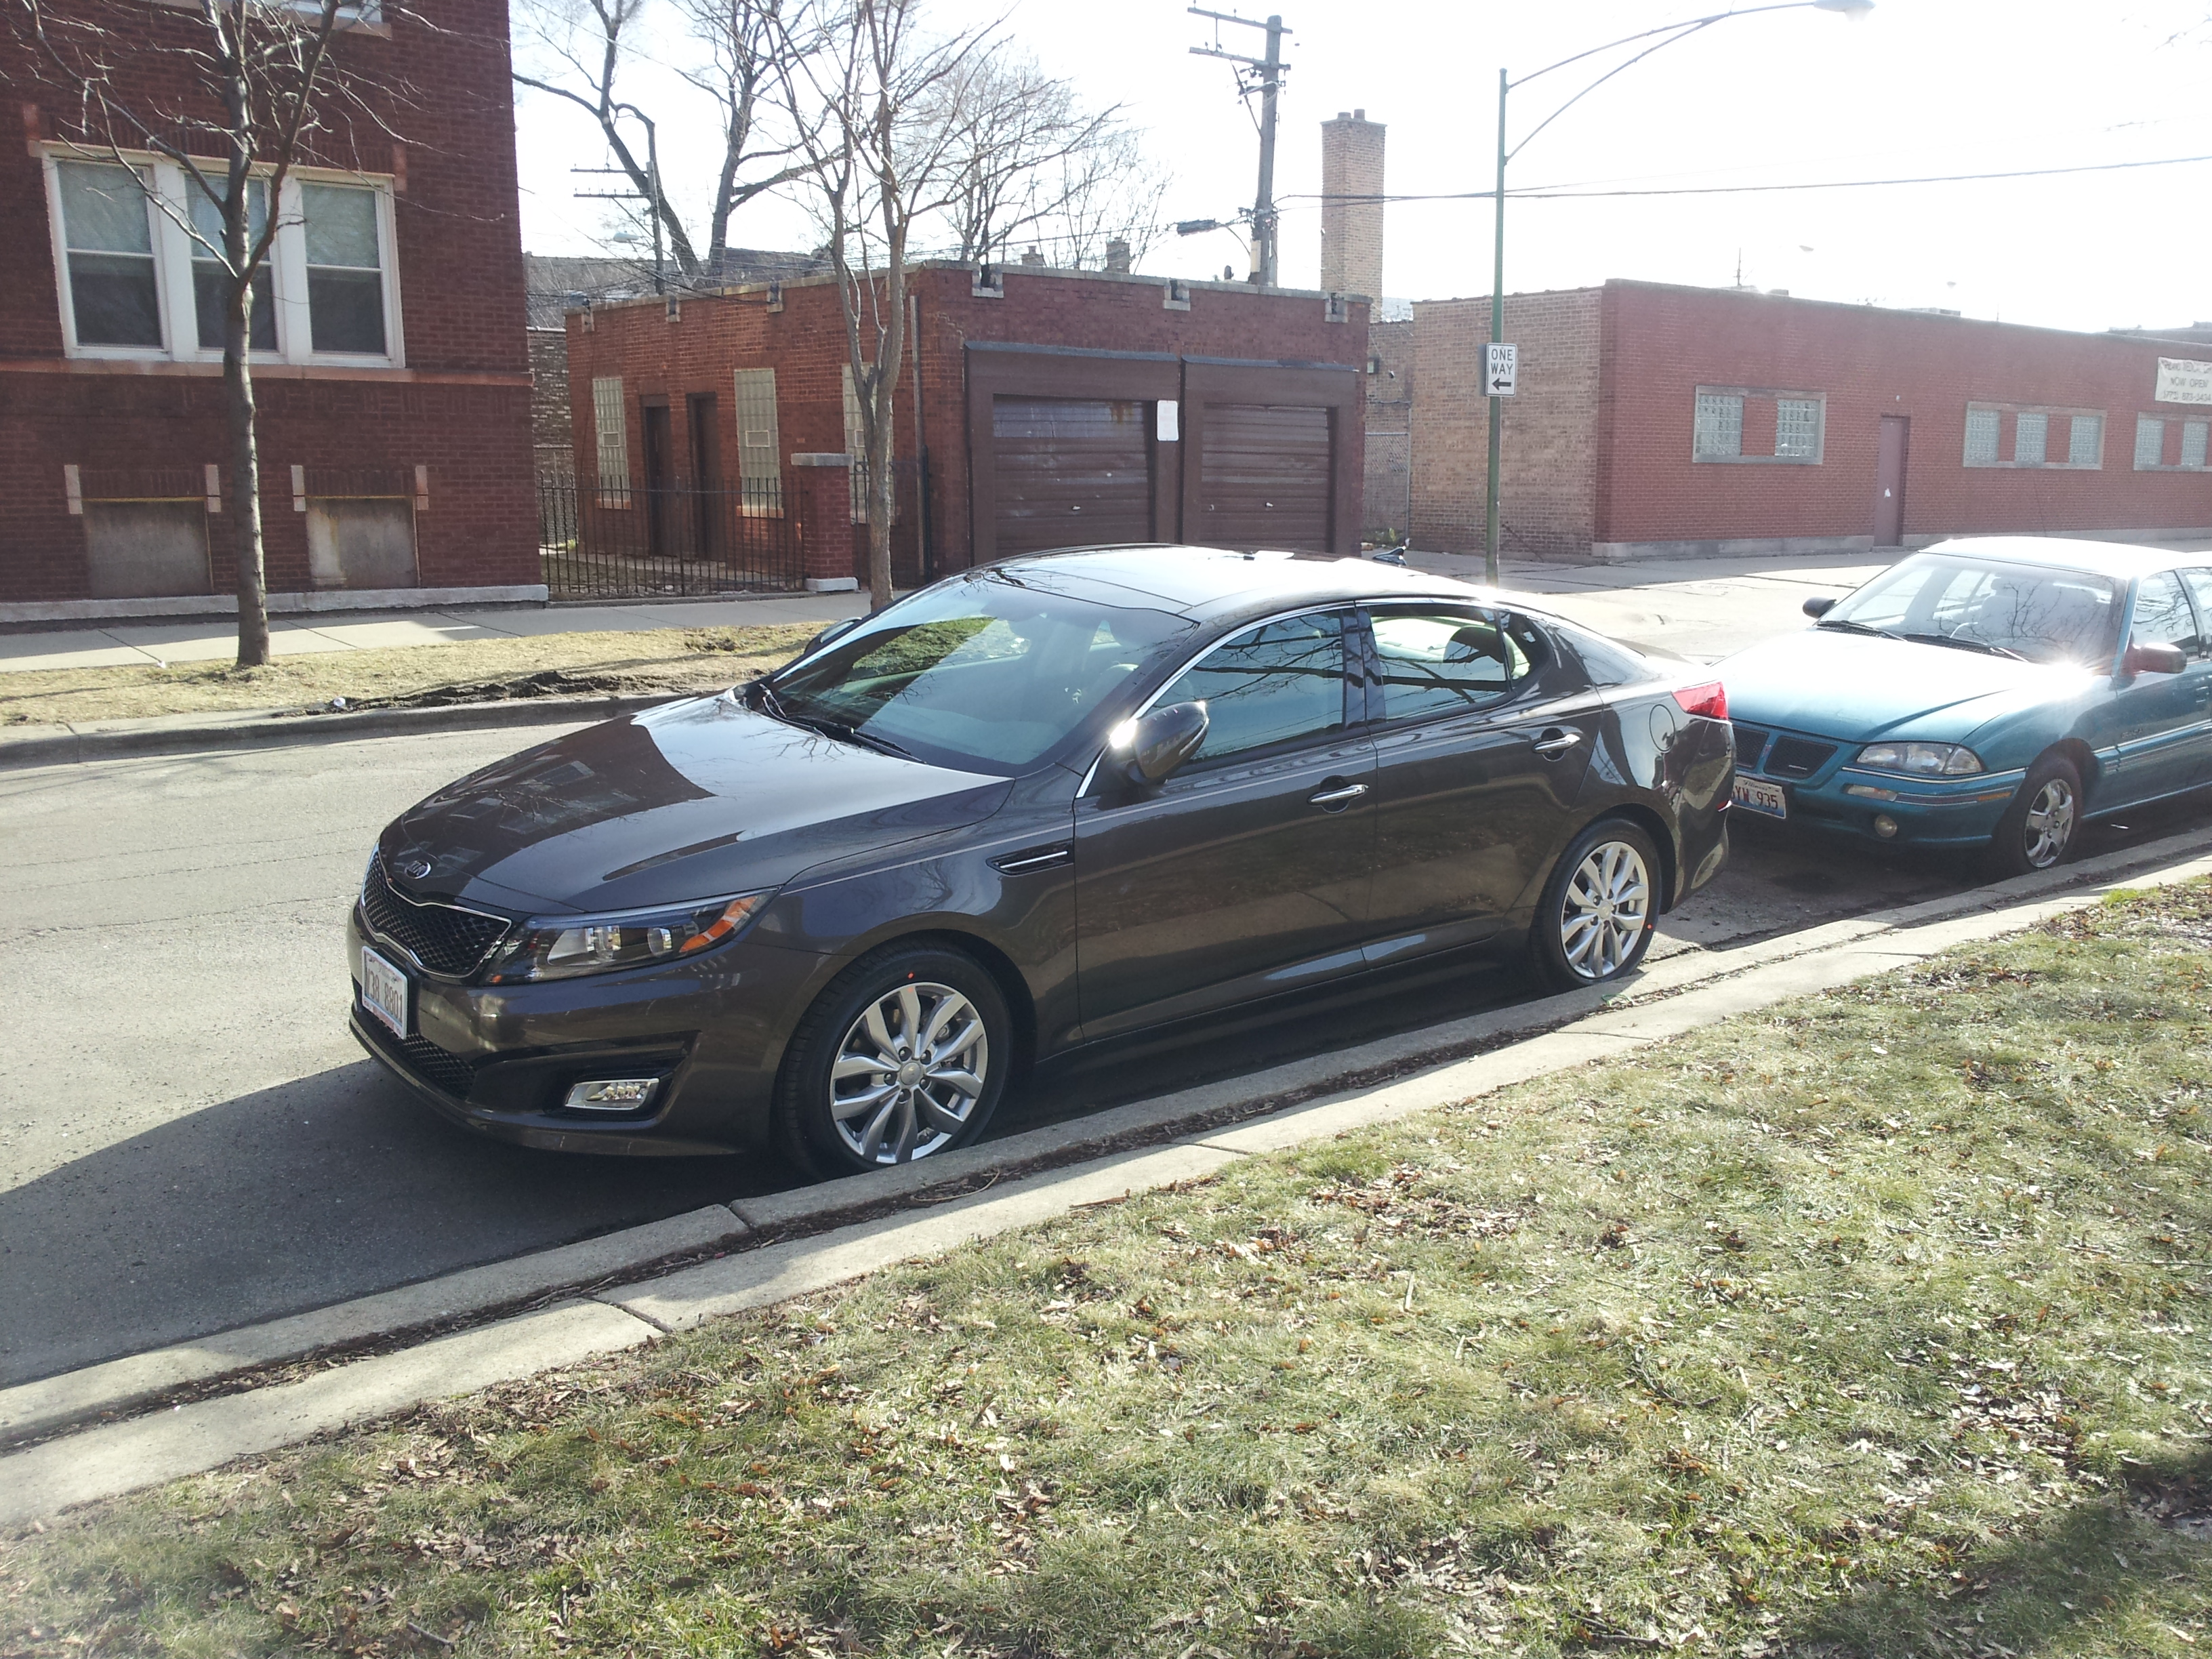 adajer general test drive buying salesman that during looking considering before really required babysitting have when drove require shouldnt solo need vehicles evox bought house though used even close politely sell dont driving anything sportier above 40-50k vehicle being there said cars advice research some bothering welcomed with interested unless quite dealership accidentally death slipping neutral chekov into doesnt what pics make sure crush